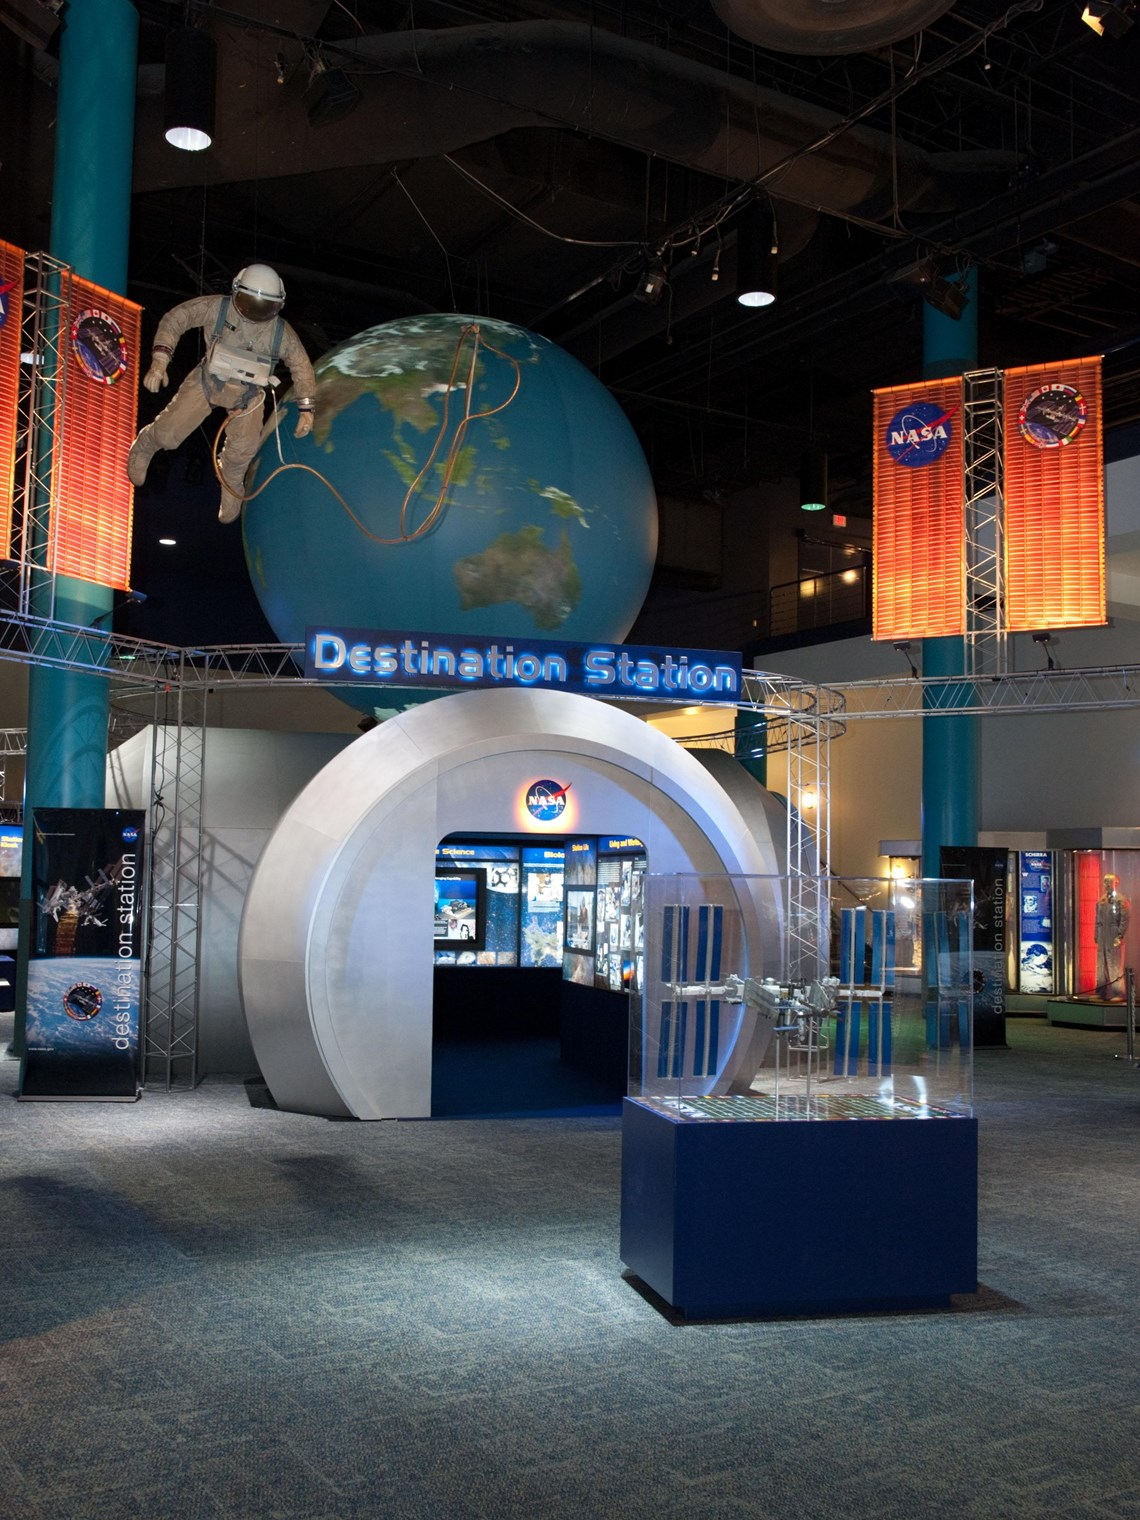 Destination Station at Space Center Houston